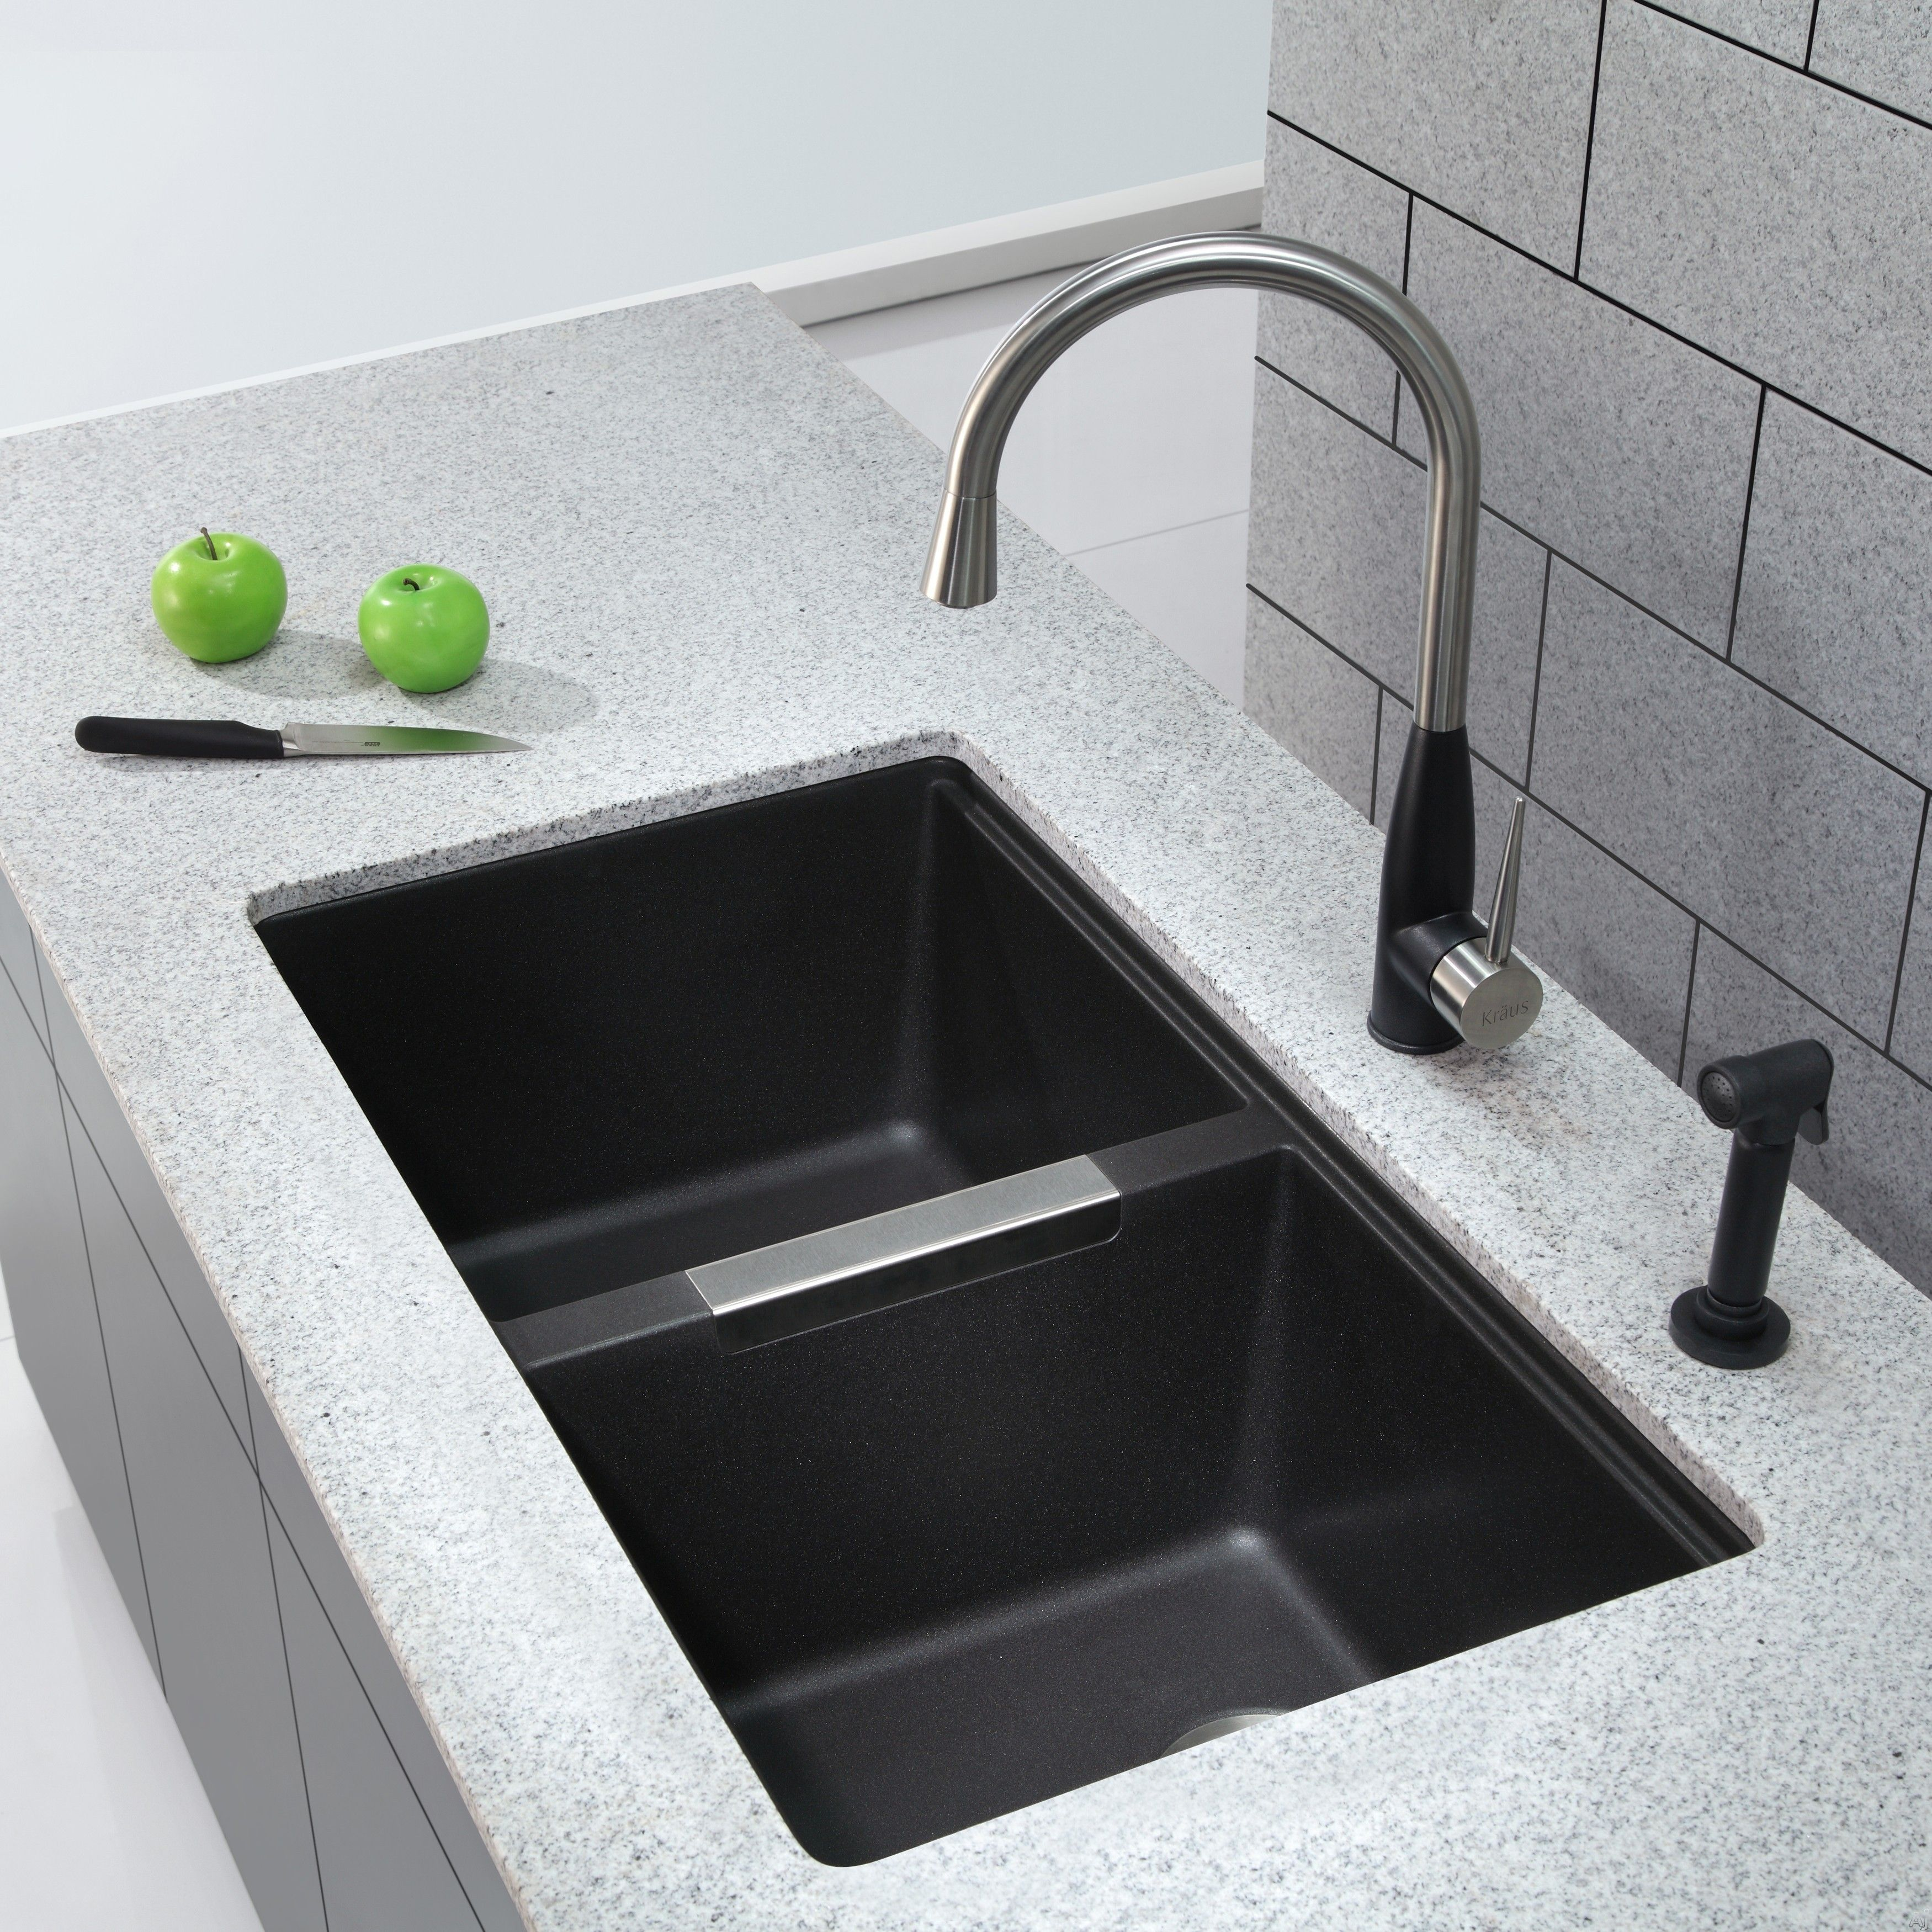 Double Kitchen Sink Aid Grinder Google Search